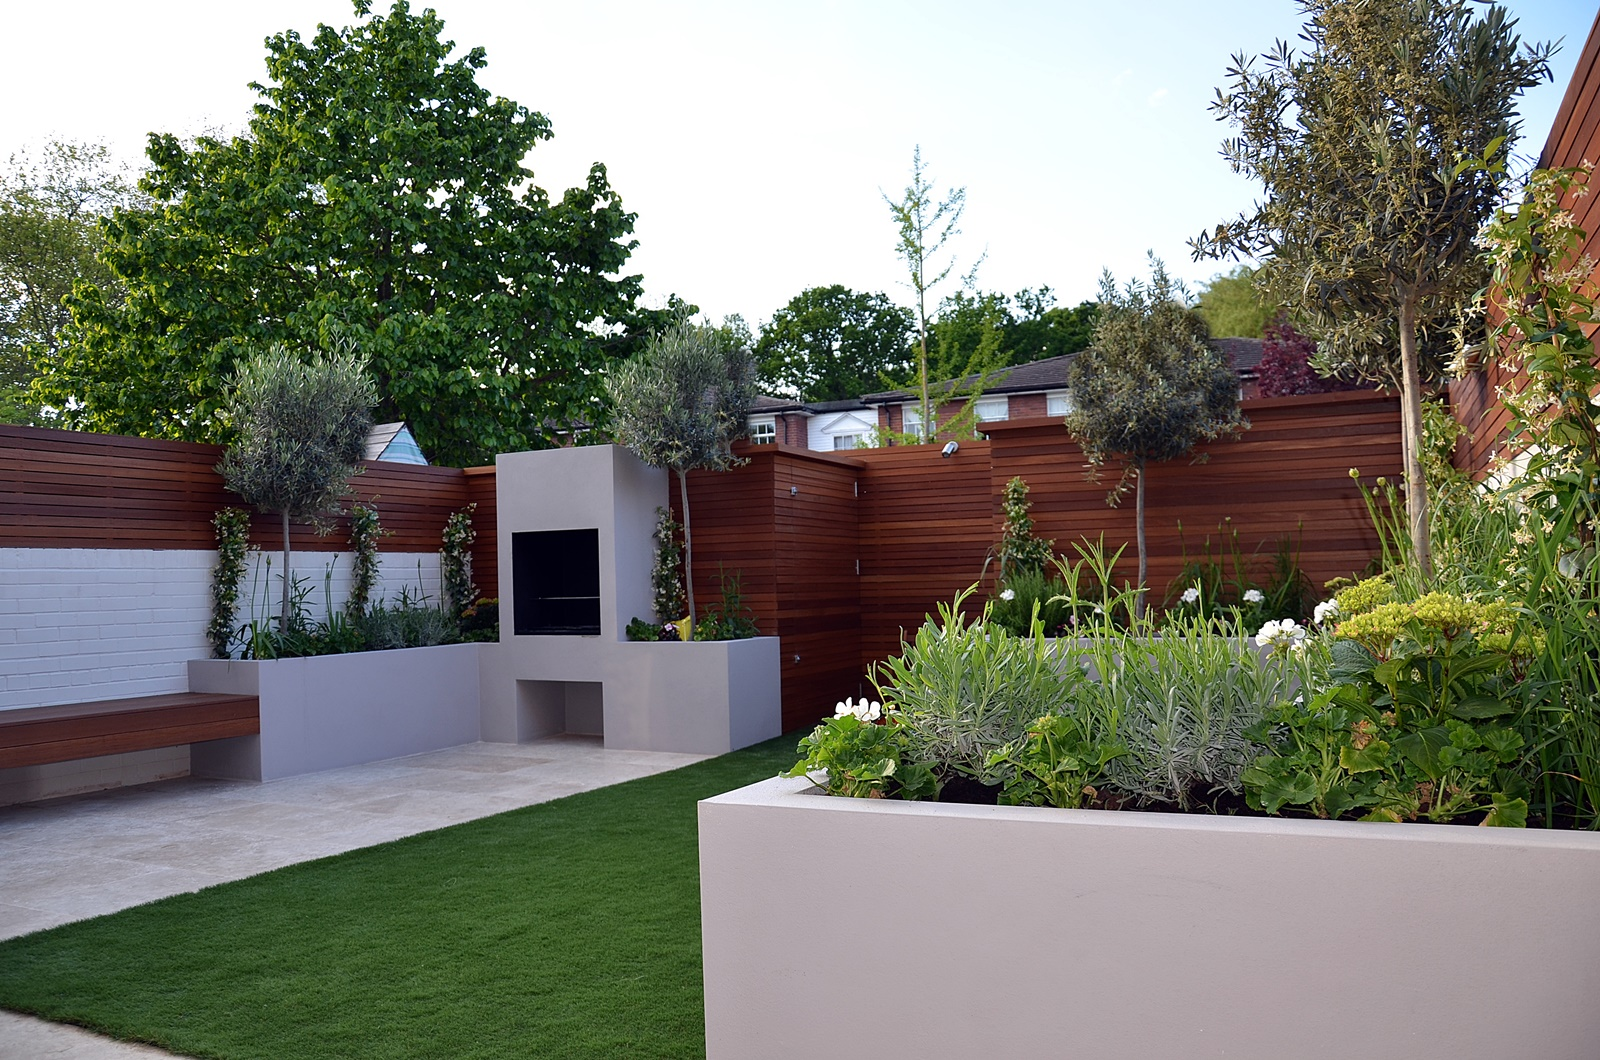 Modern garden design fulham chelsea clapham battersea for Landscape design for small garden